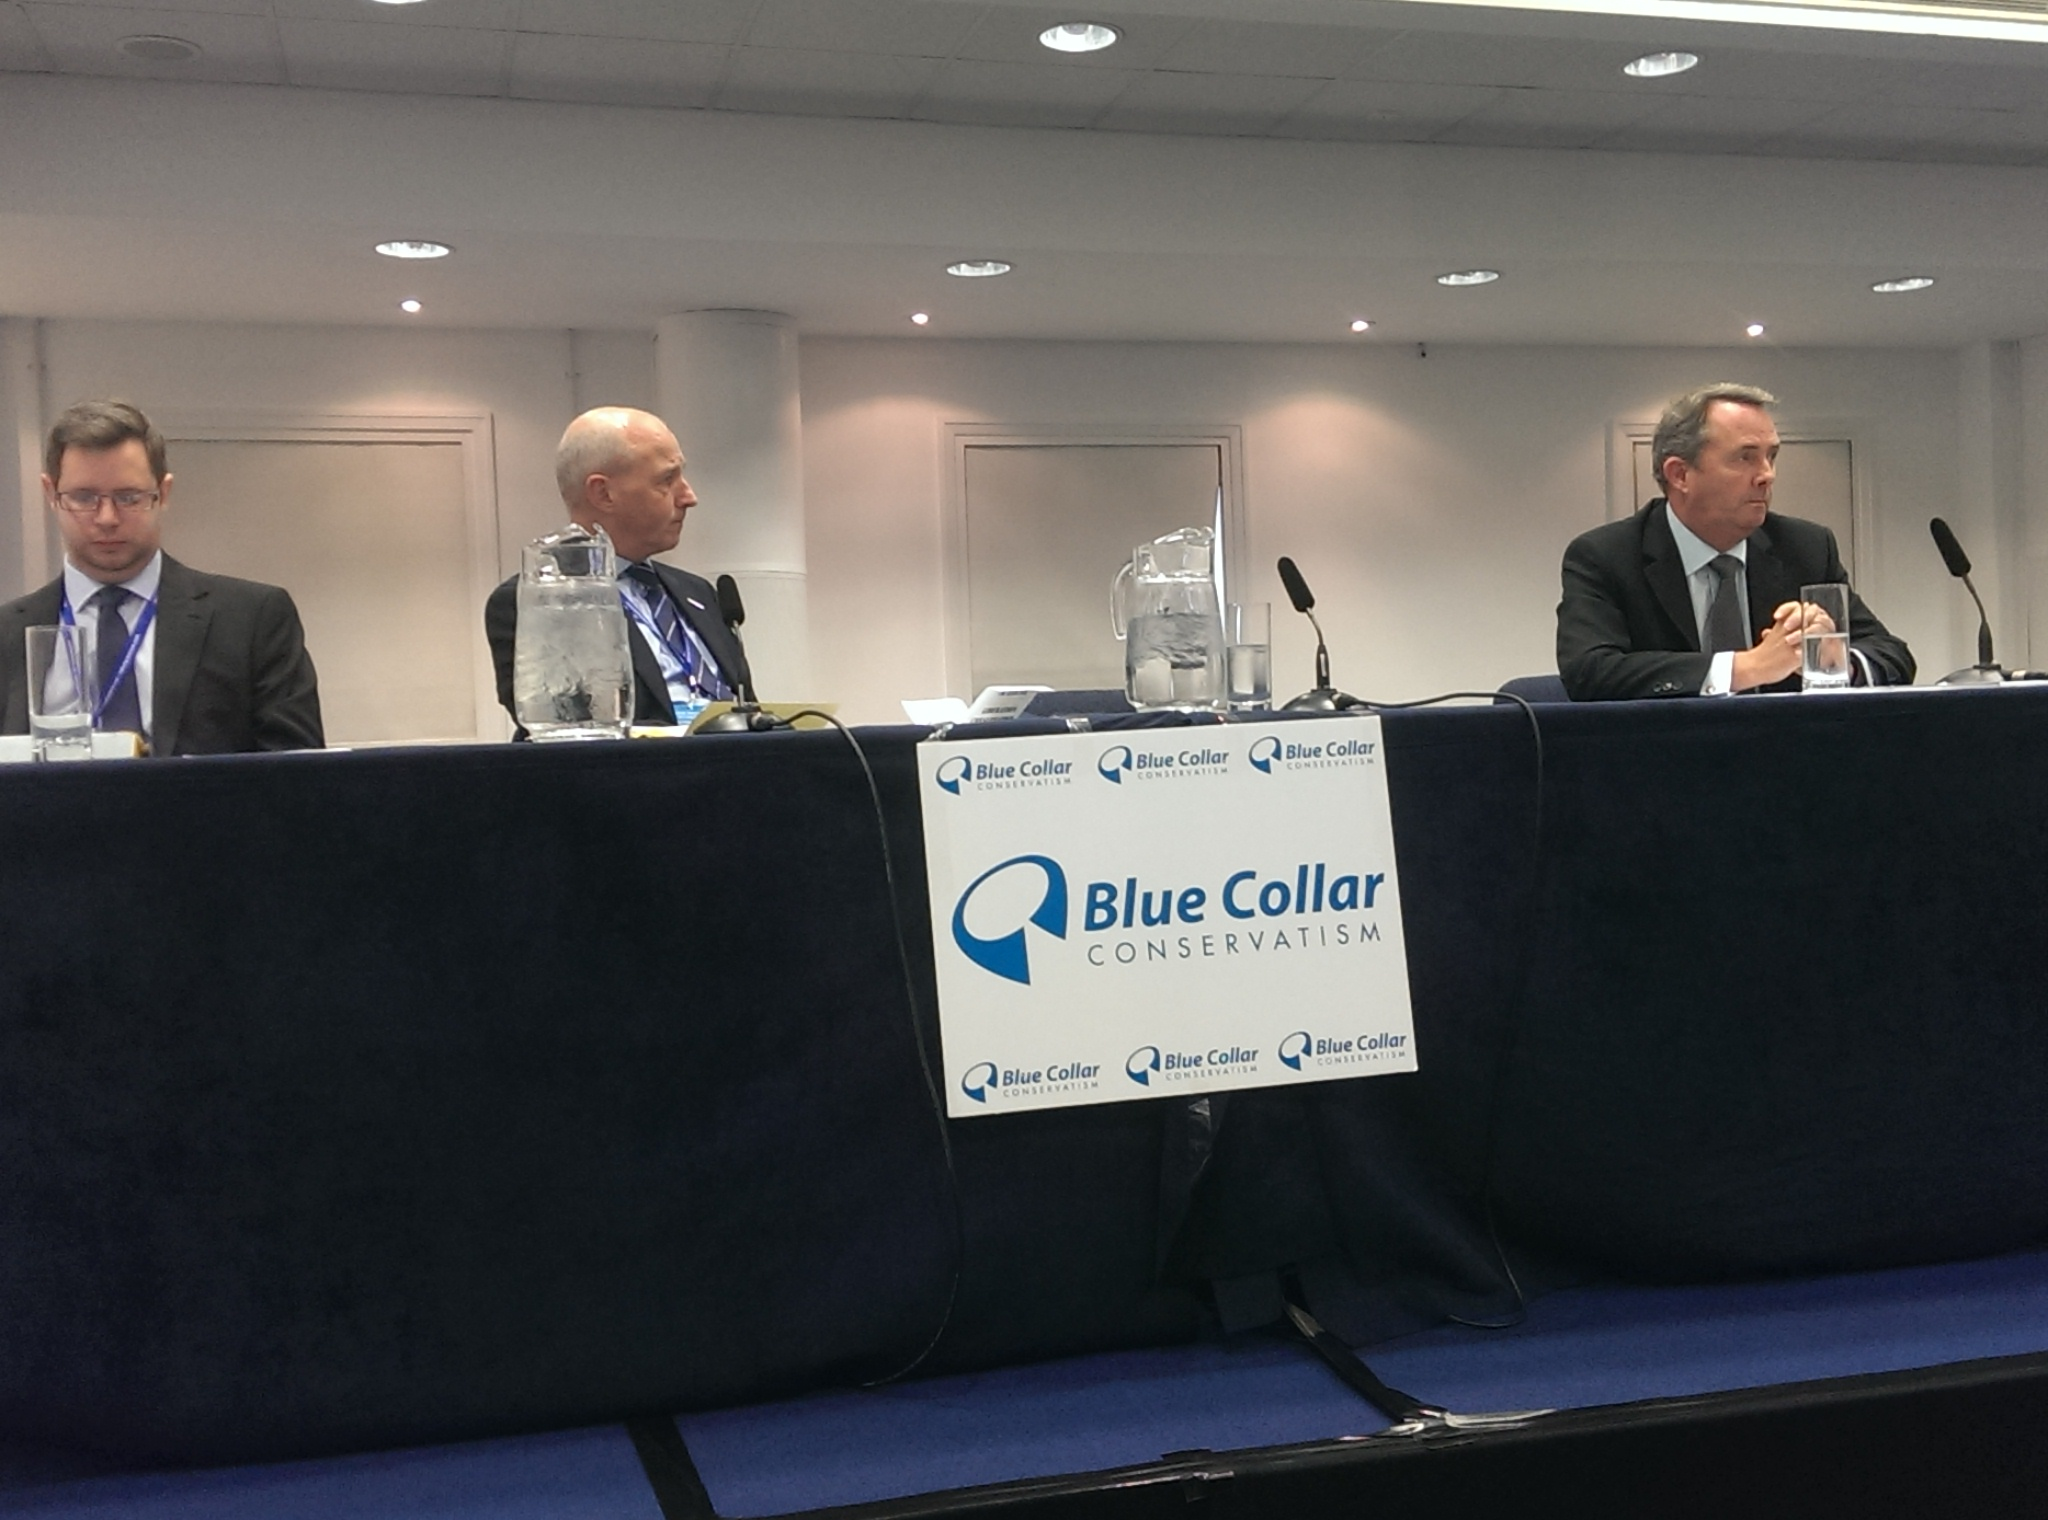 Liam Fox calls for 'Liberation Conservatism' at Blue Collar Conservatism event